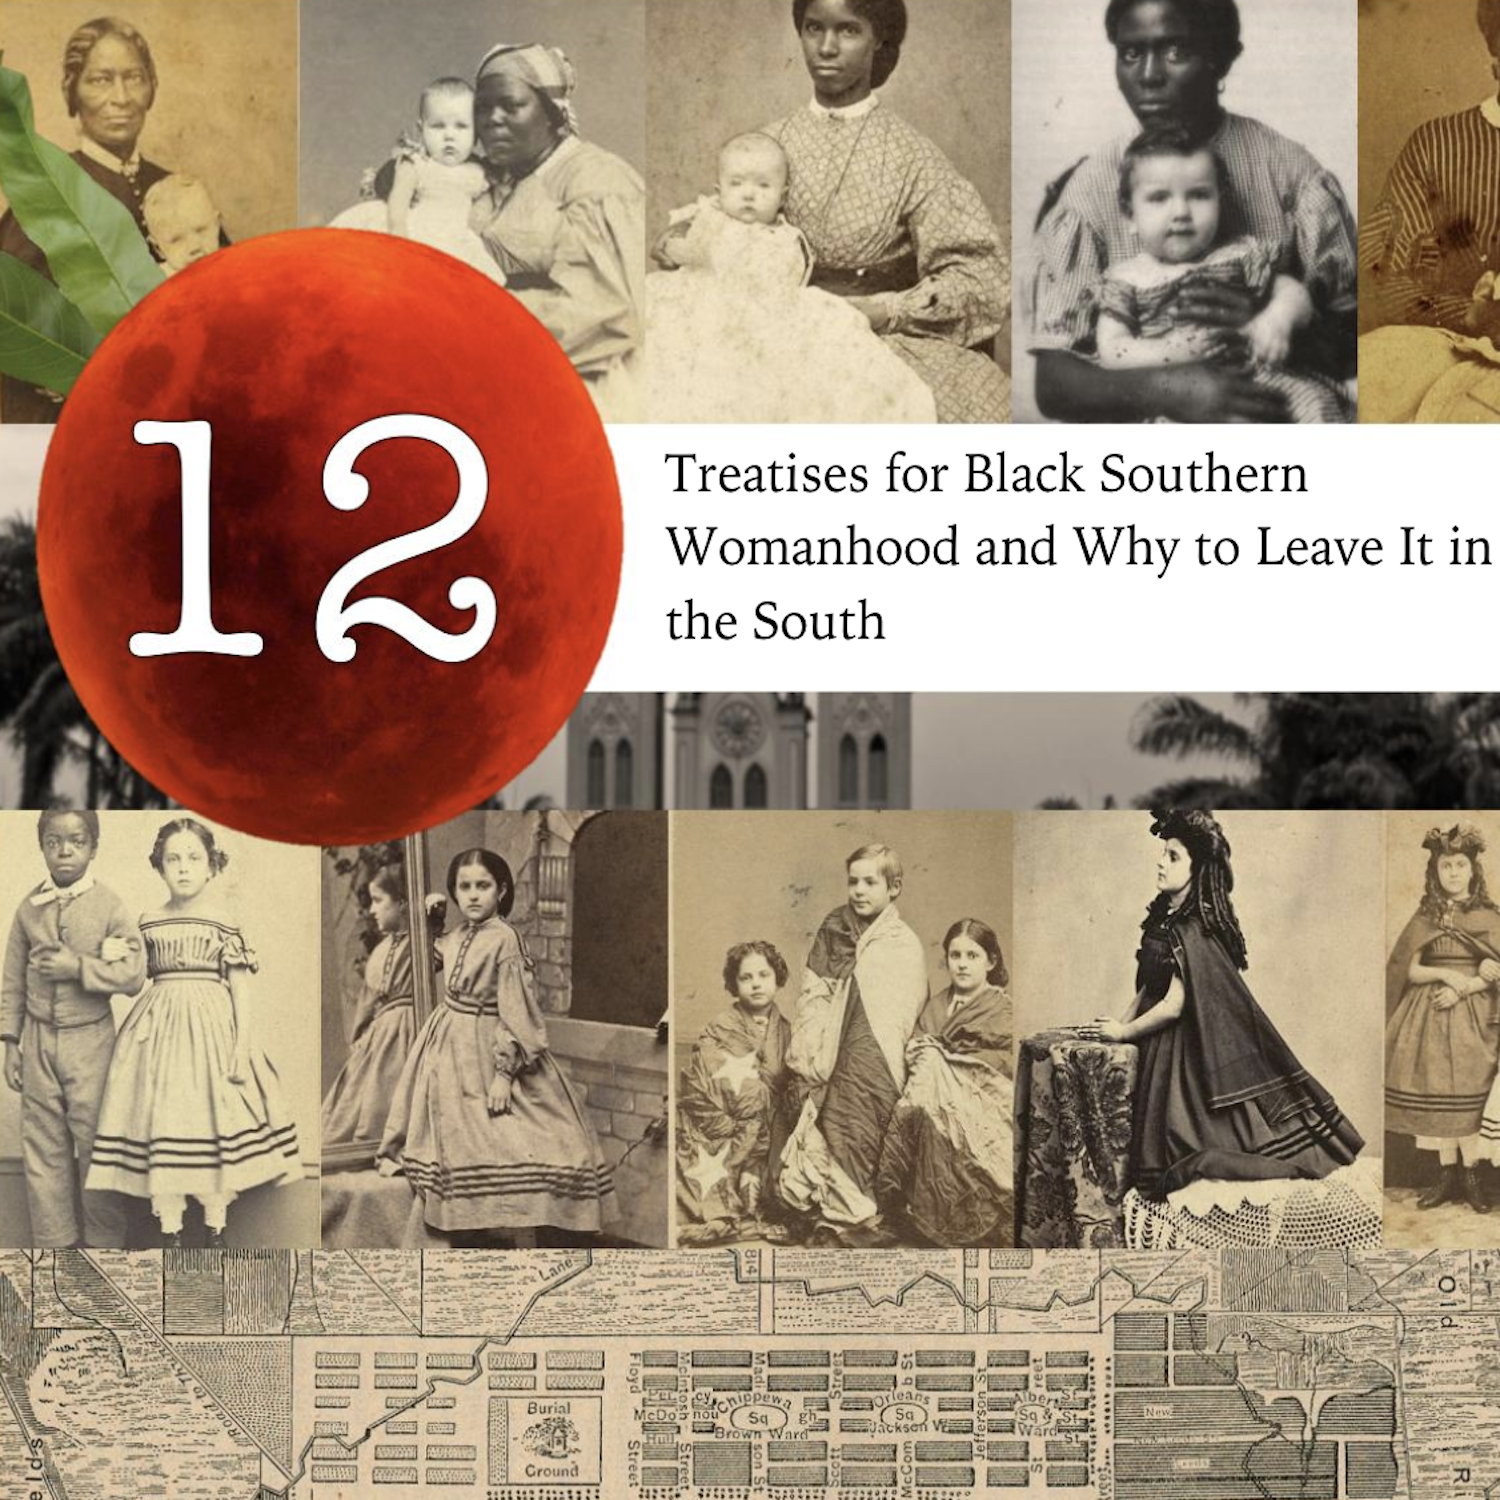 12 Treatises for Black Southern Womanhood and Why to Leave the South by Sabina Tyler Jones